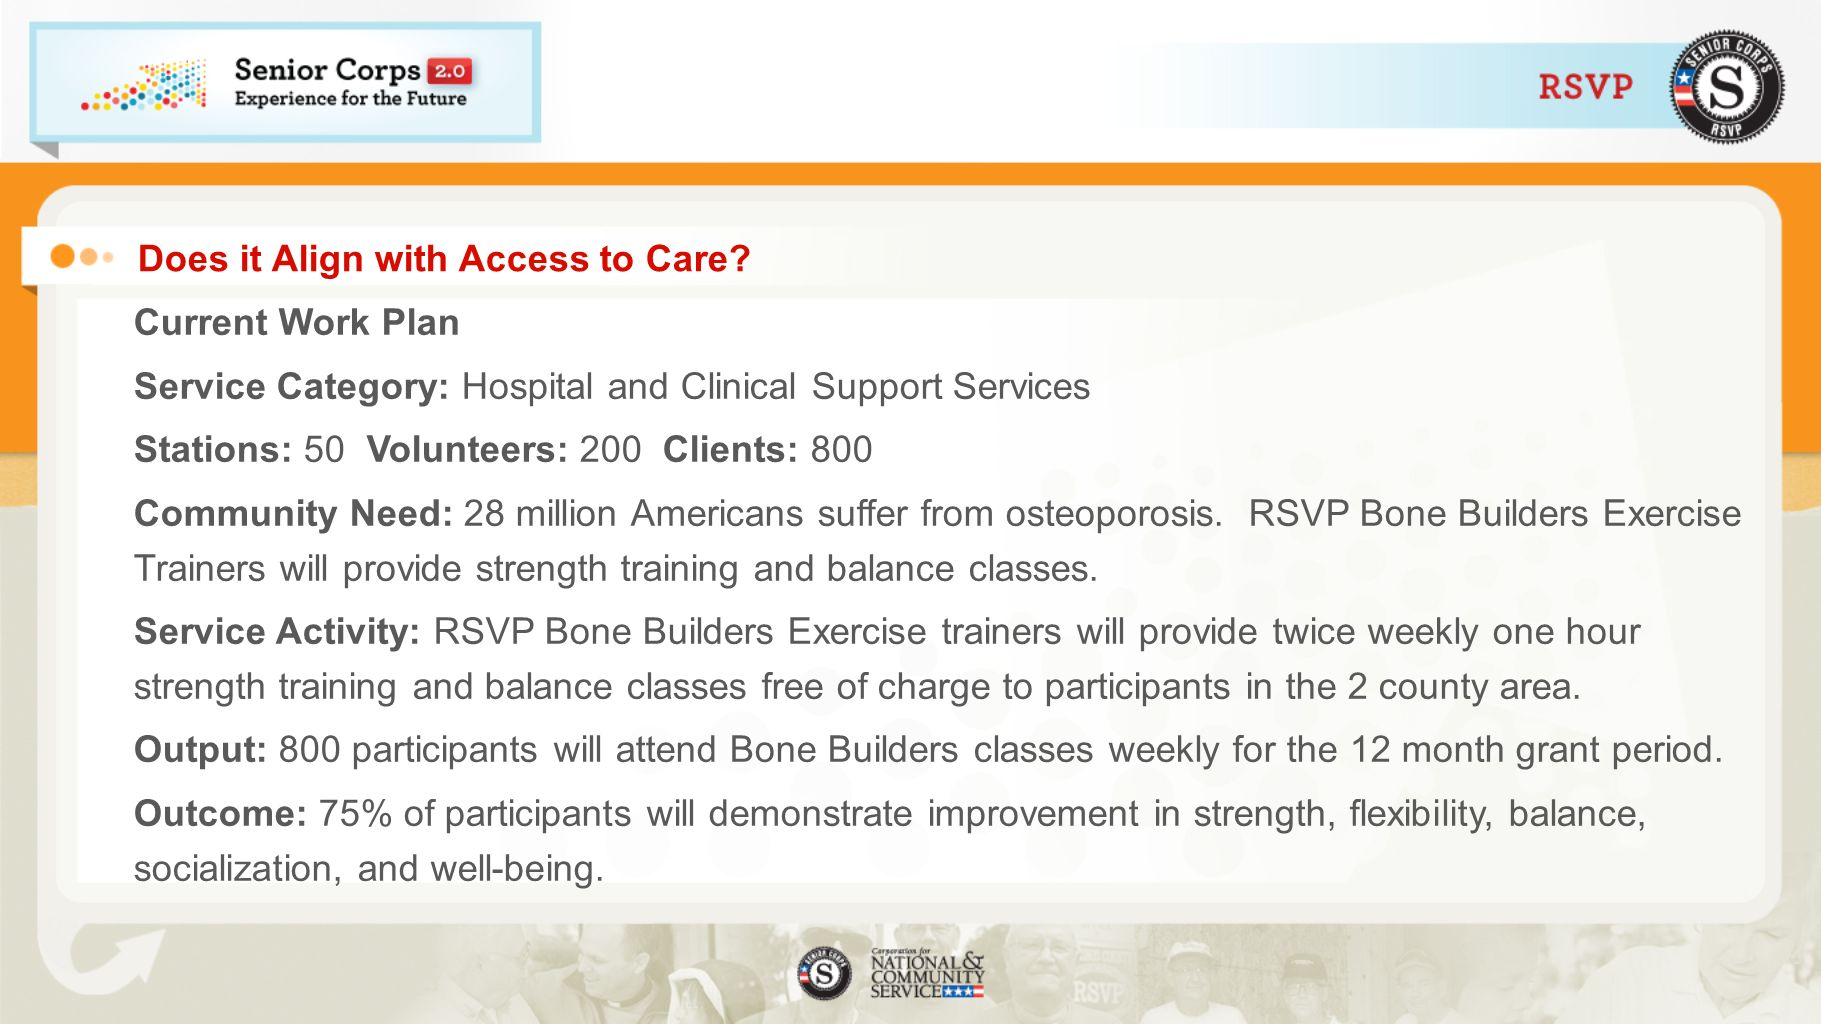 Does it Align with Access to Care